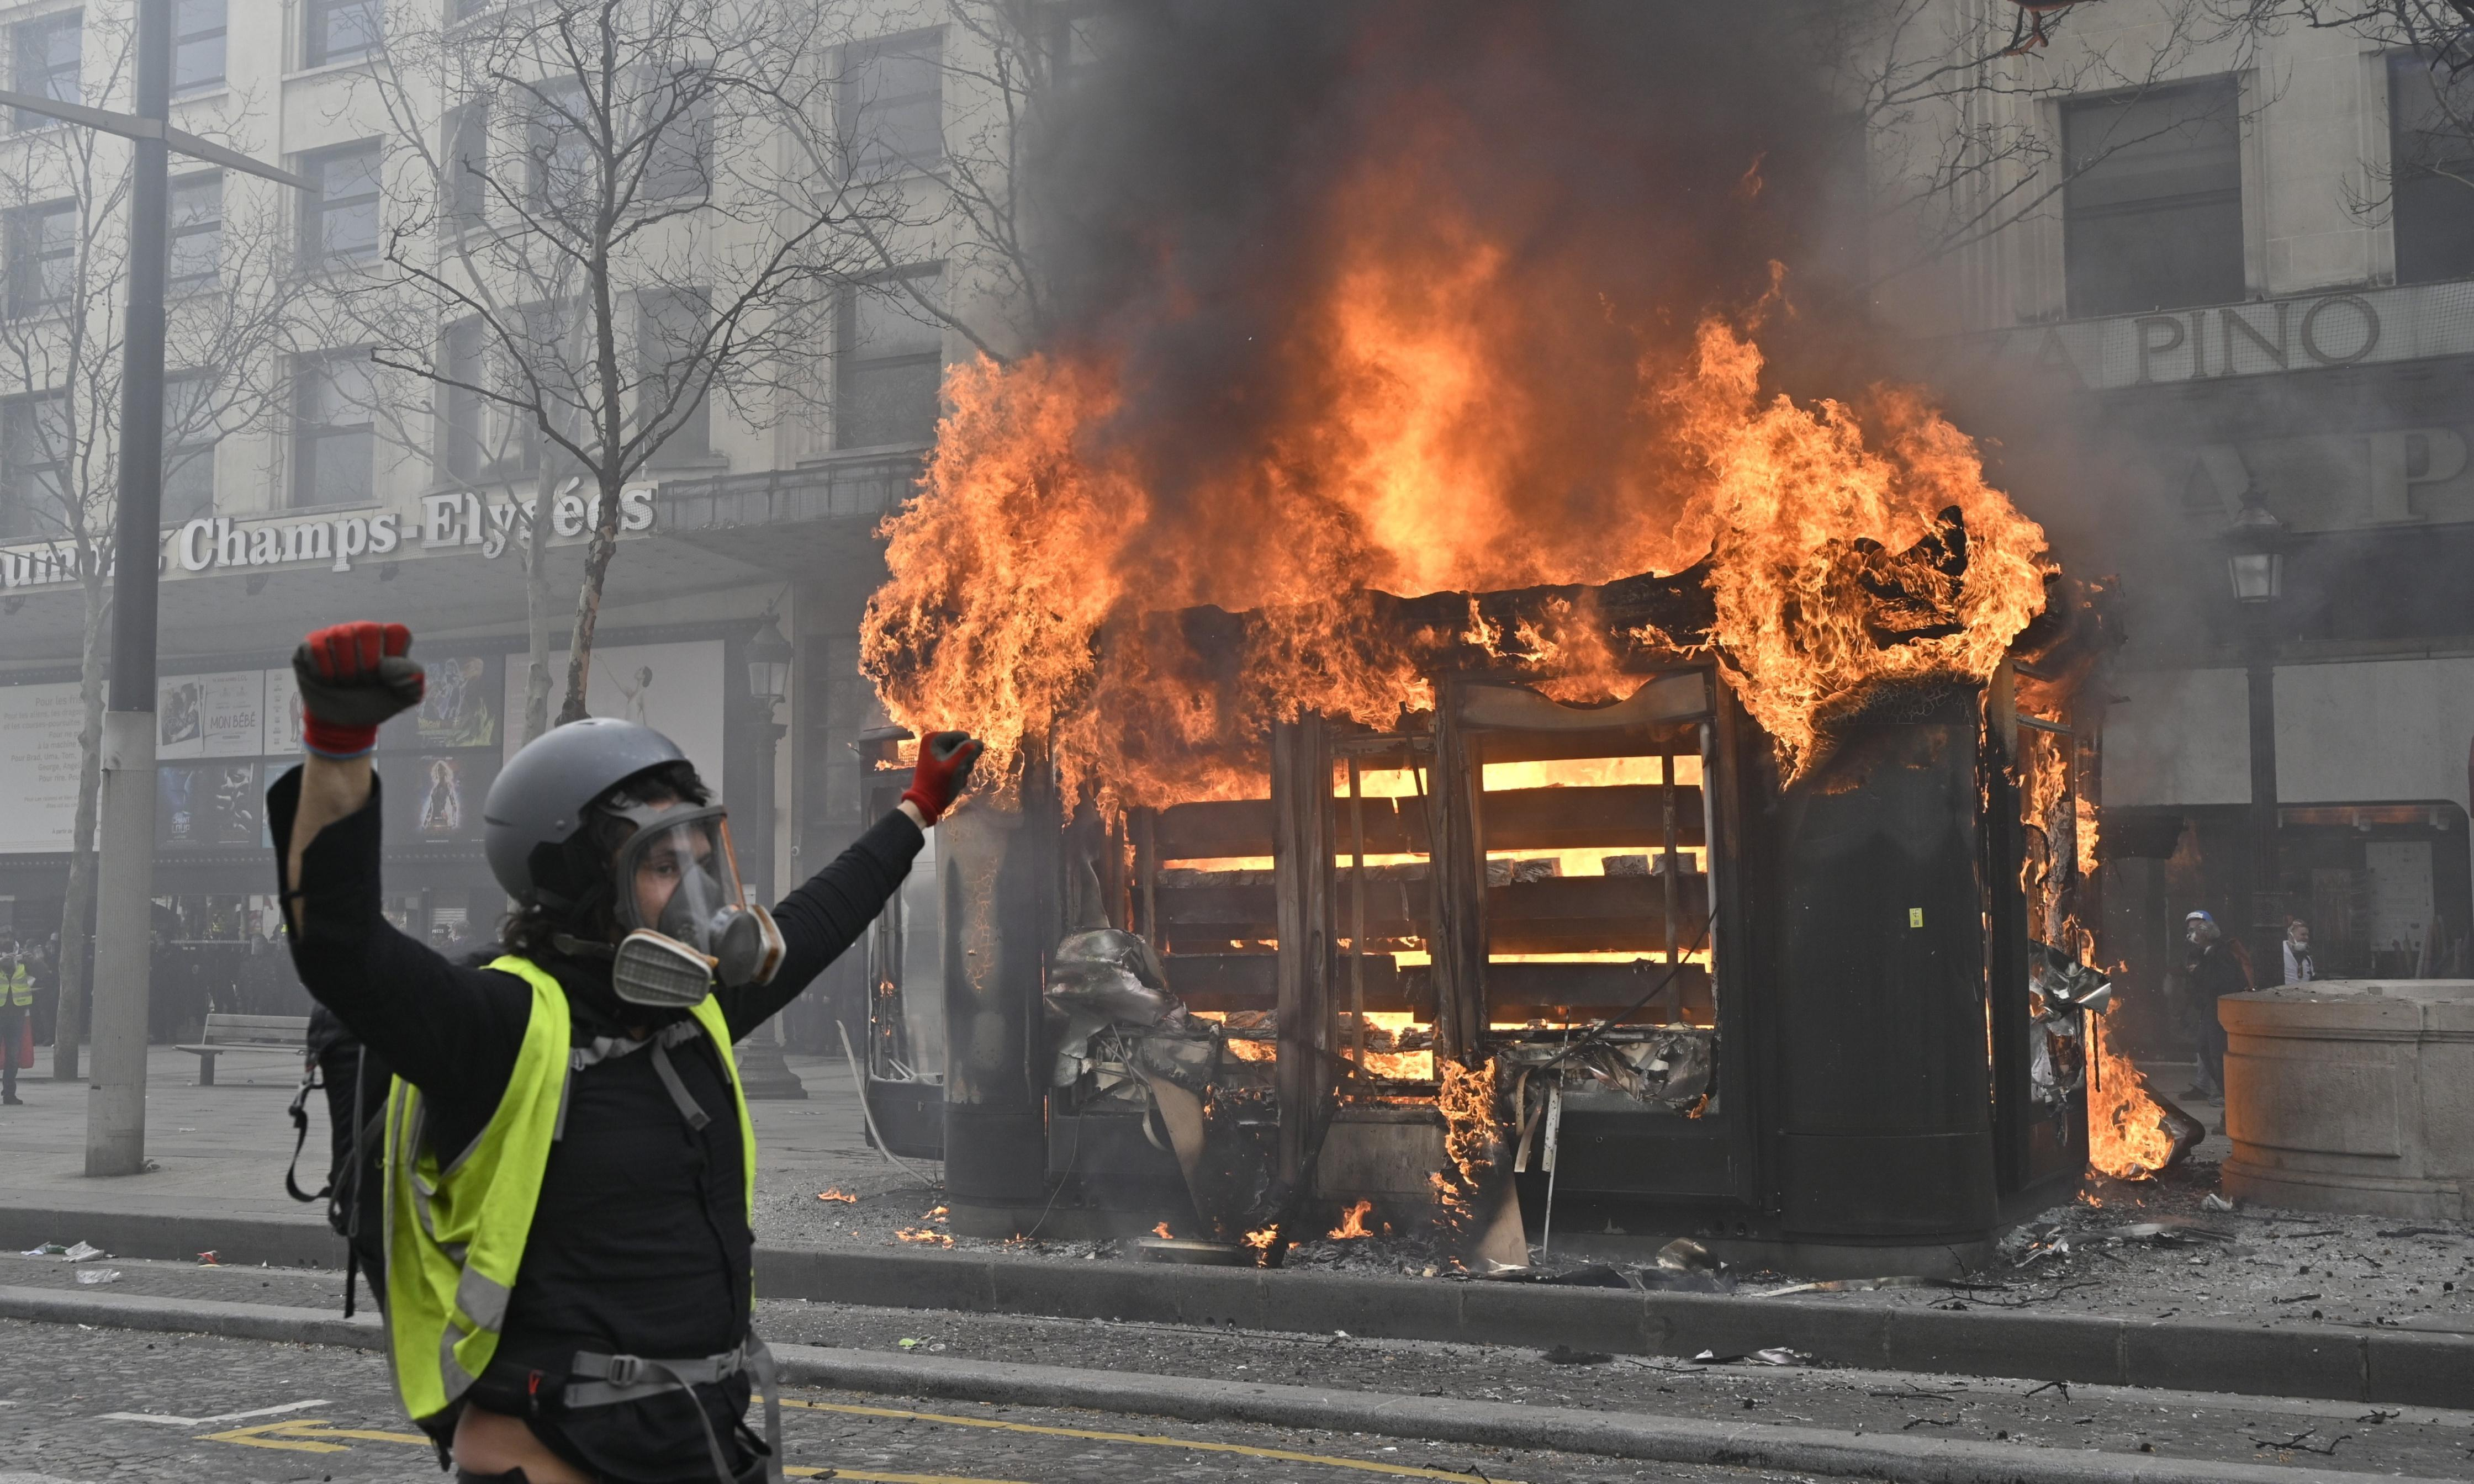 When protesters burned news kiosks in Paris, I had to take a stand…